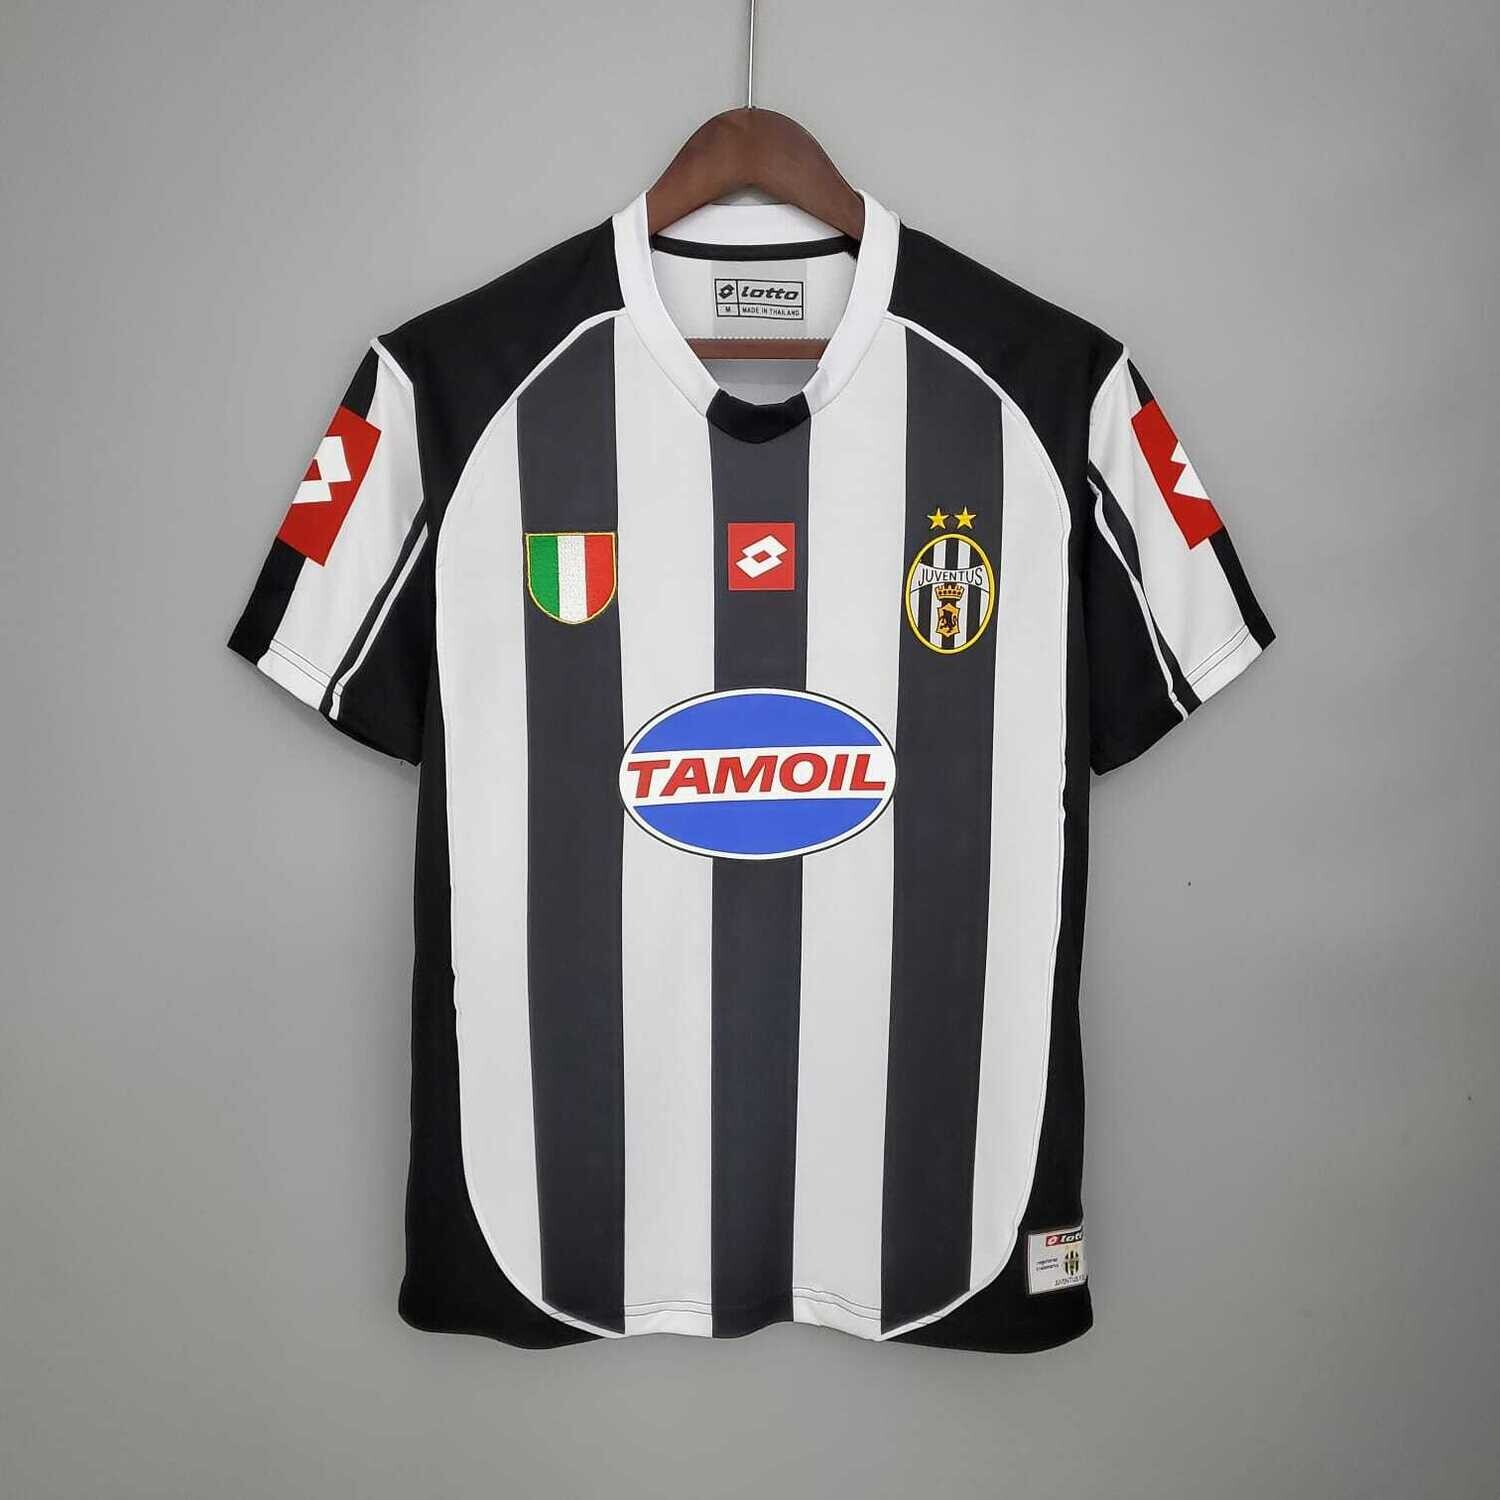 Juventus 2002-03 Retro Home Jersey [Pre-paid Only]